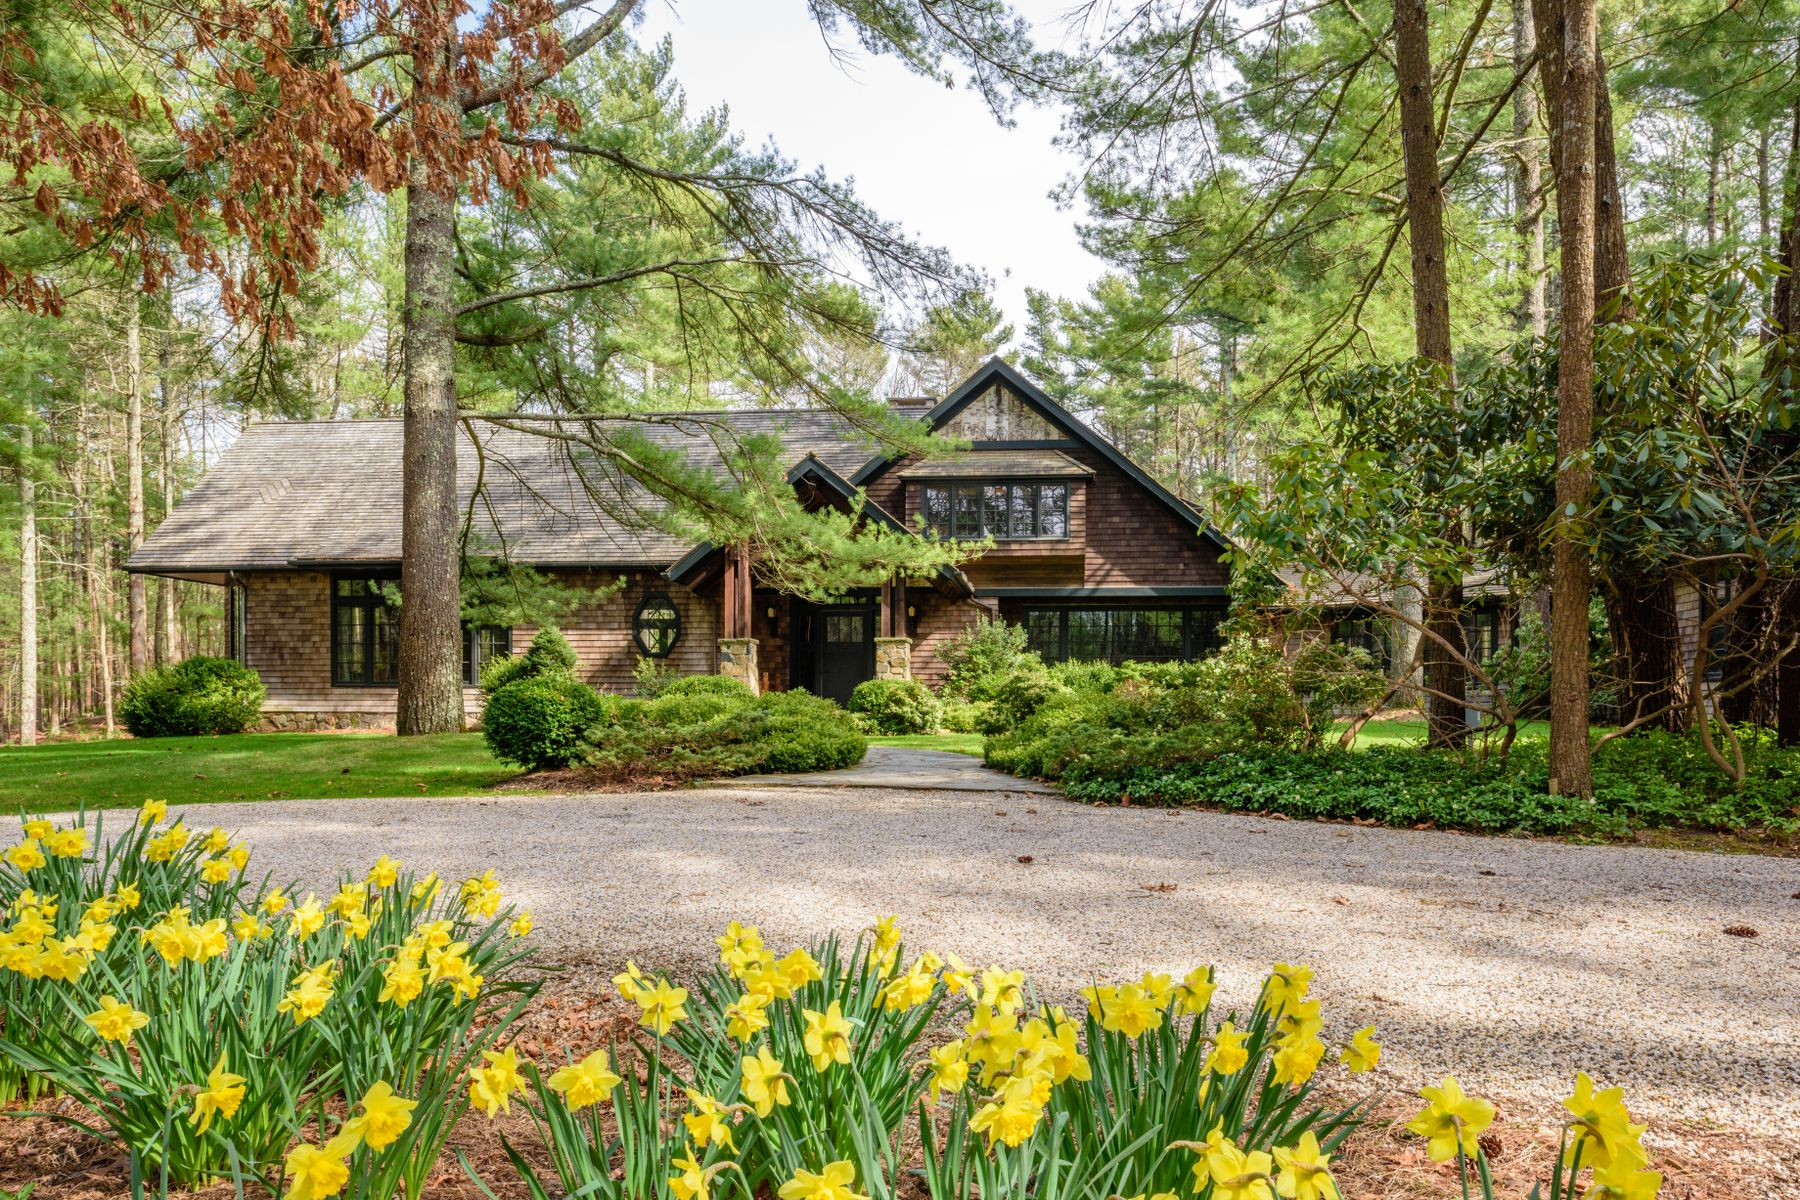 Single Family Home for Active at ONE-OF-A-KIND ON 5.6+/- ACRES 9 Two Holes Of Water Road East Hampton, New York 11937 United States